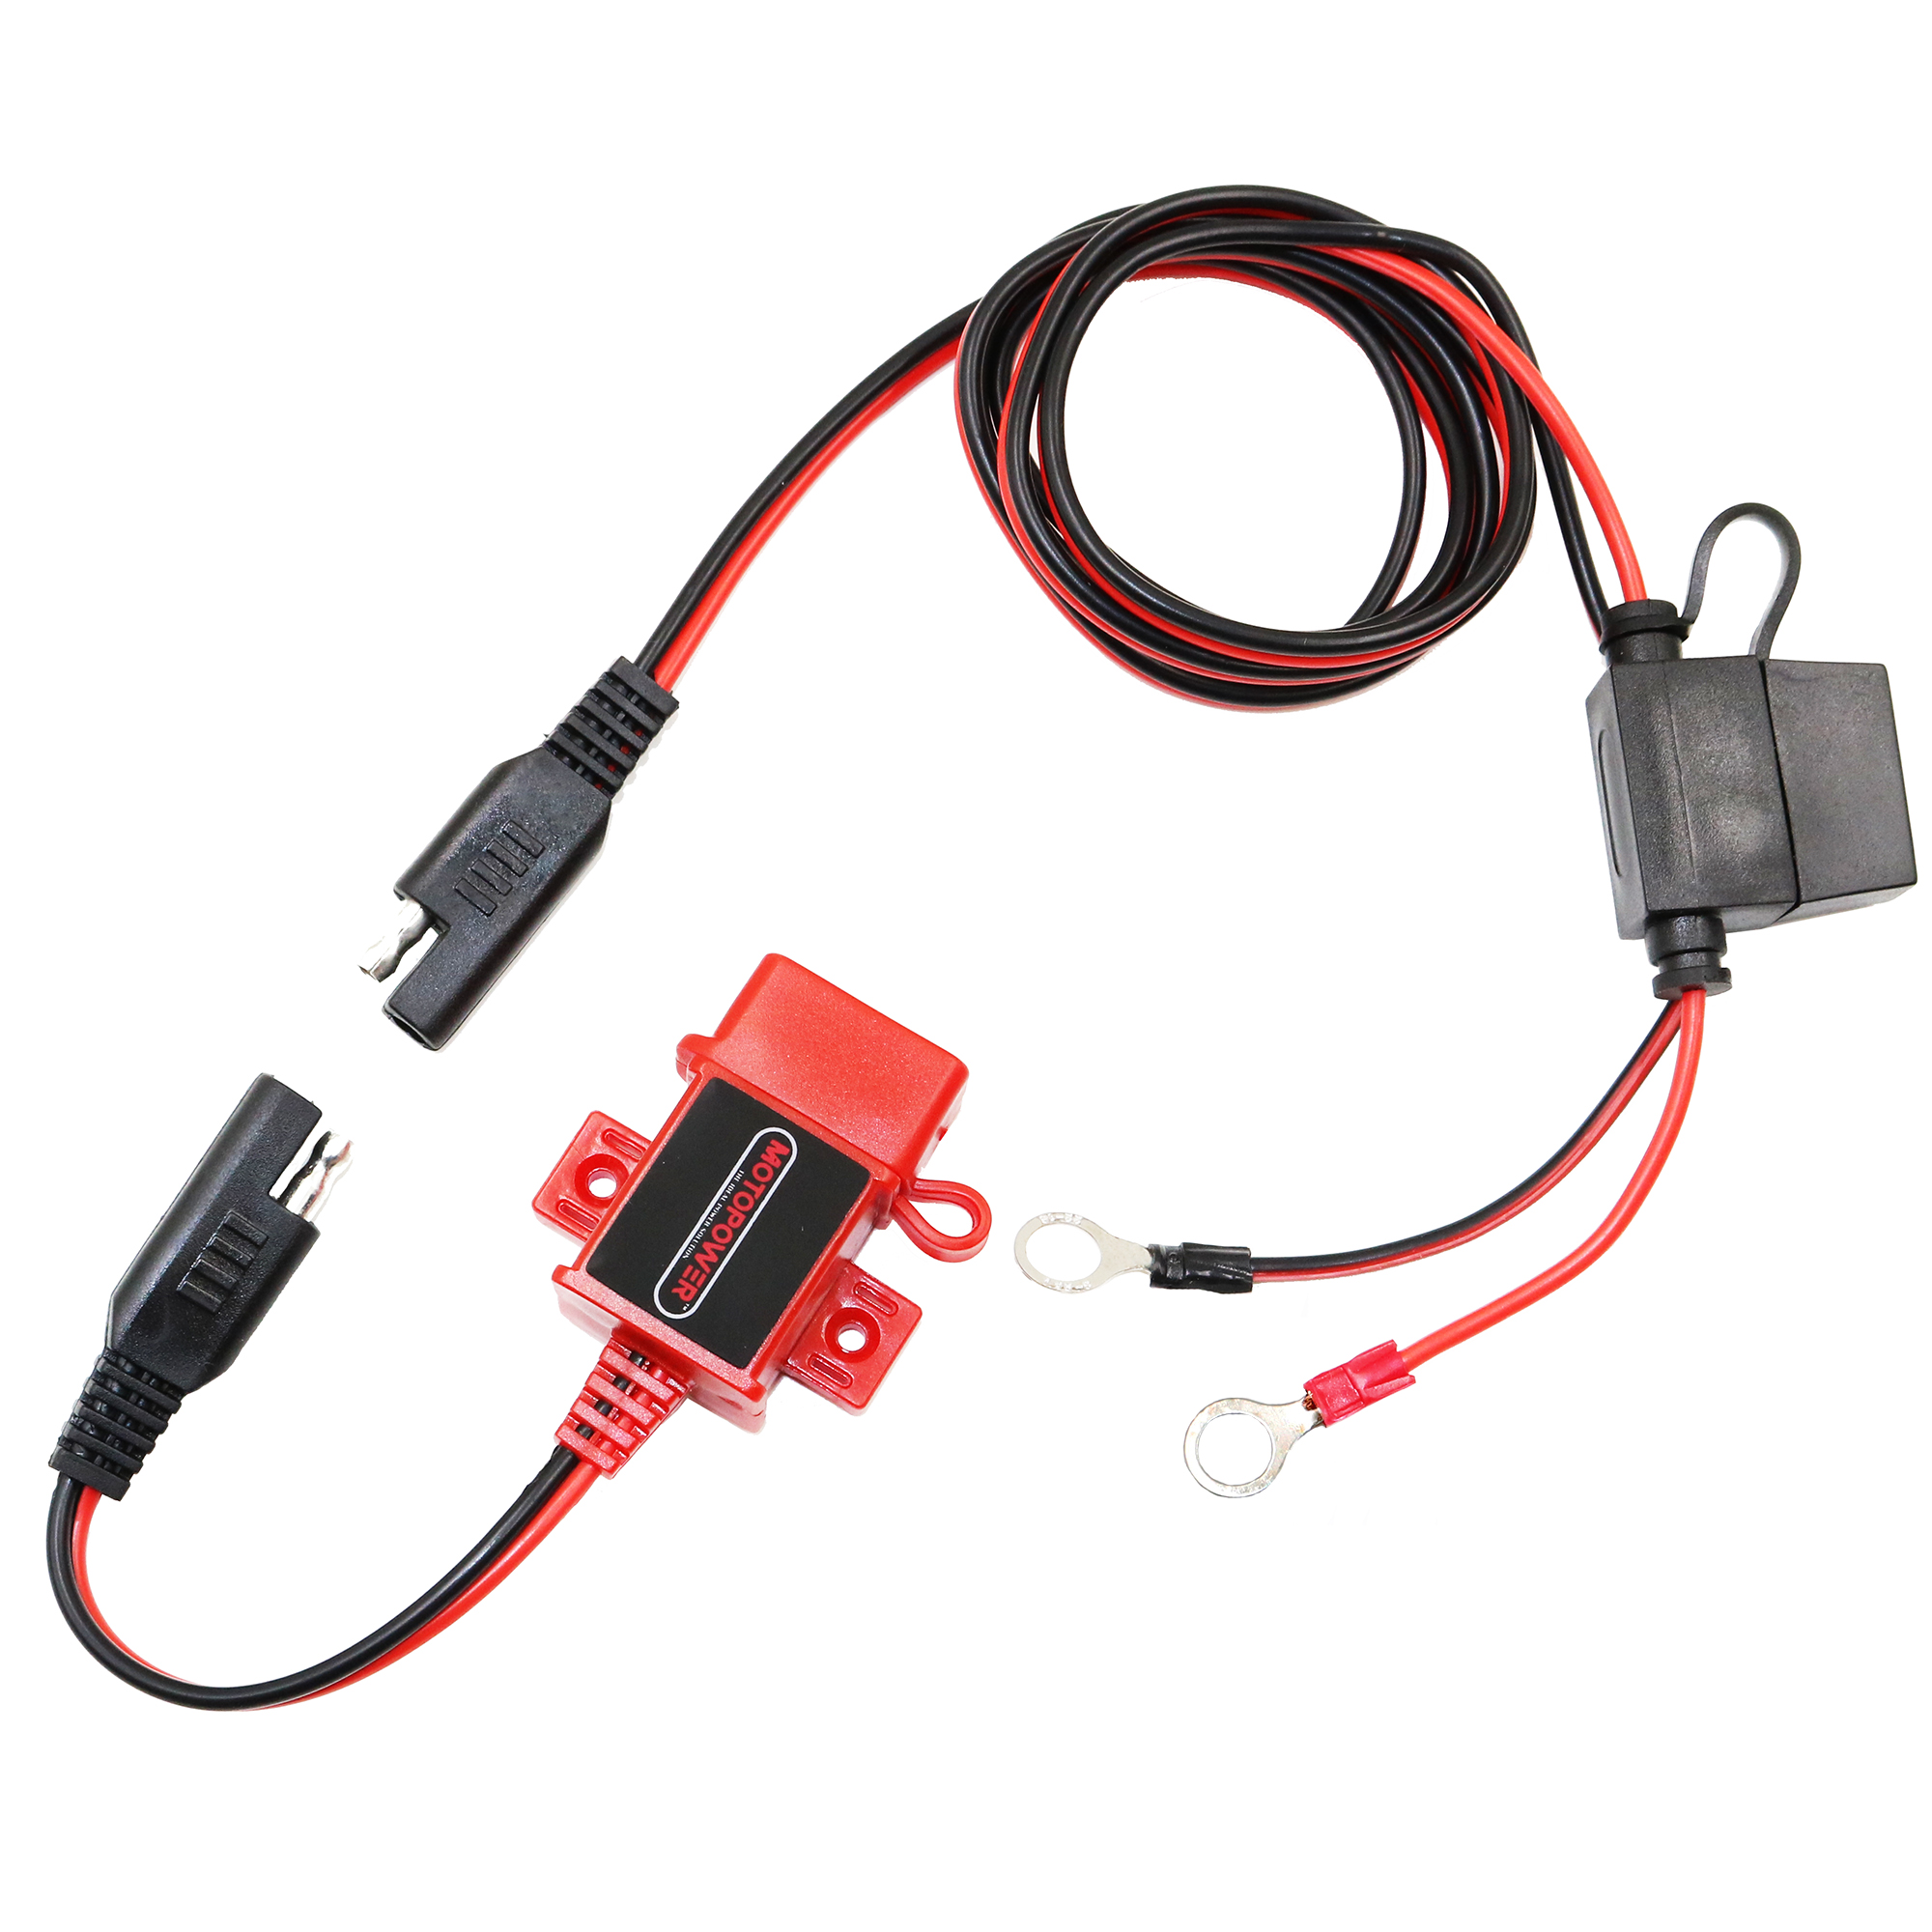 3.1Amp Waterdichte Rode Motorfiets USB Lader Kit SAE naar USB Adapter Motorfiets Telefoon Tablet GPS Lader Limited Edition